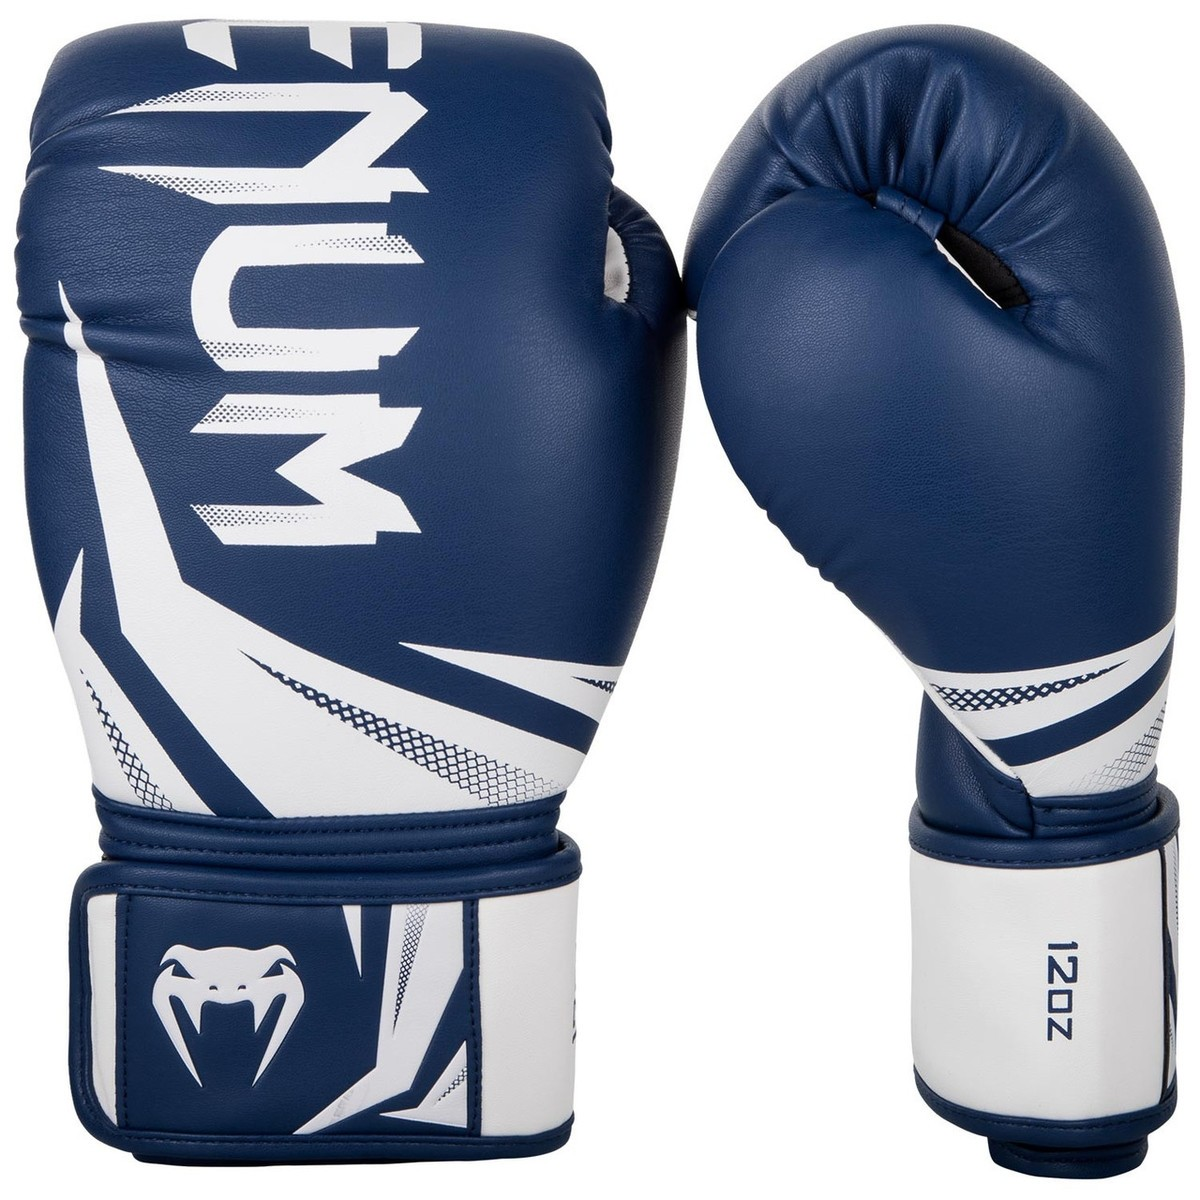 Venum Challenger 3.0 Boxing Boxing 3.0 Gloves 24d269